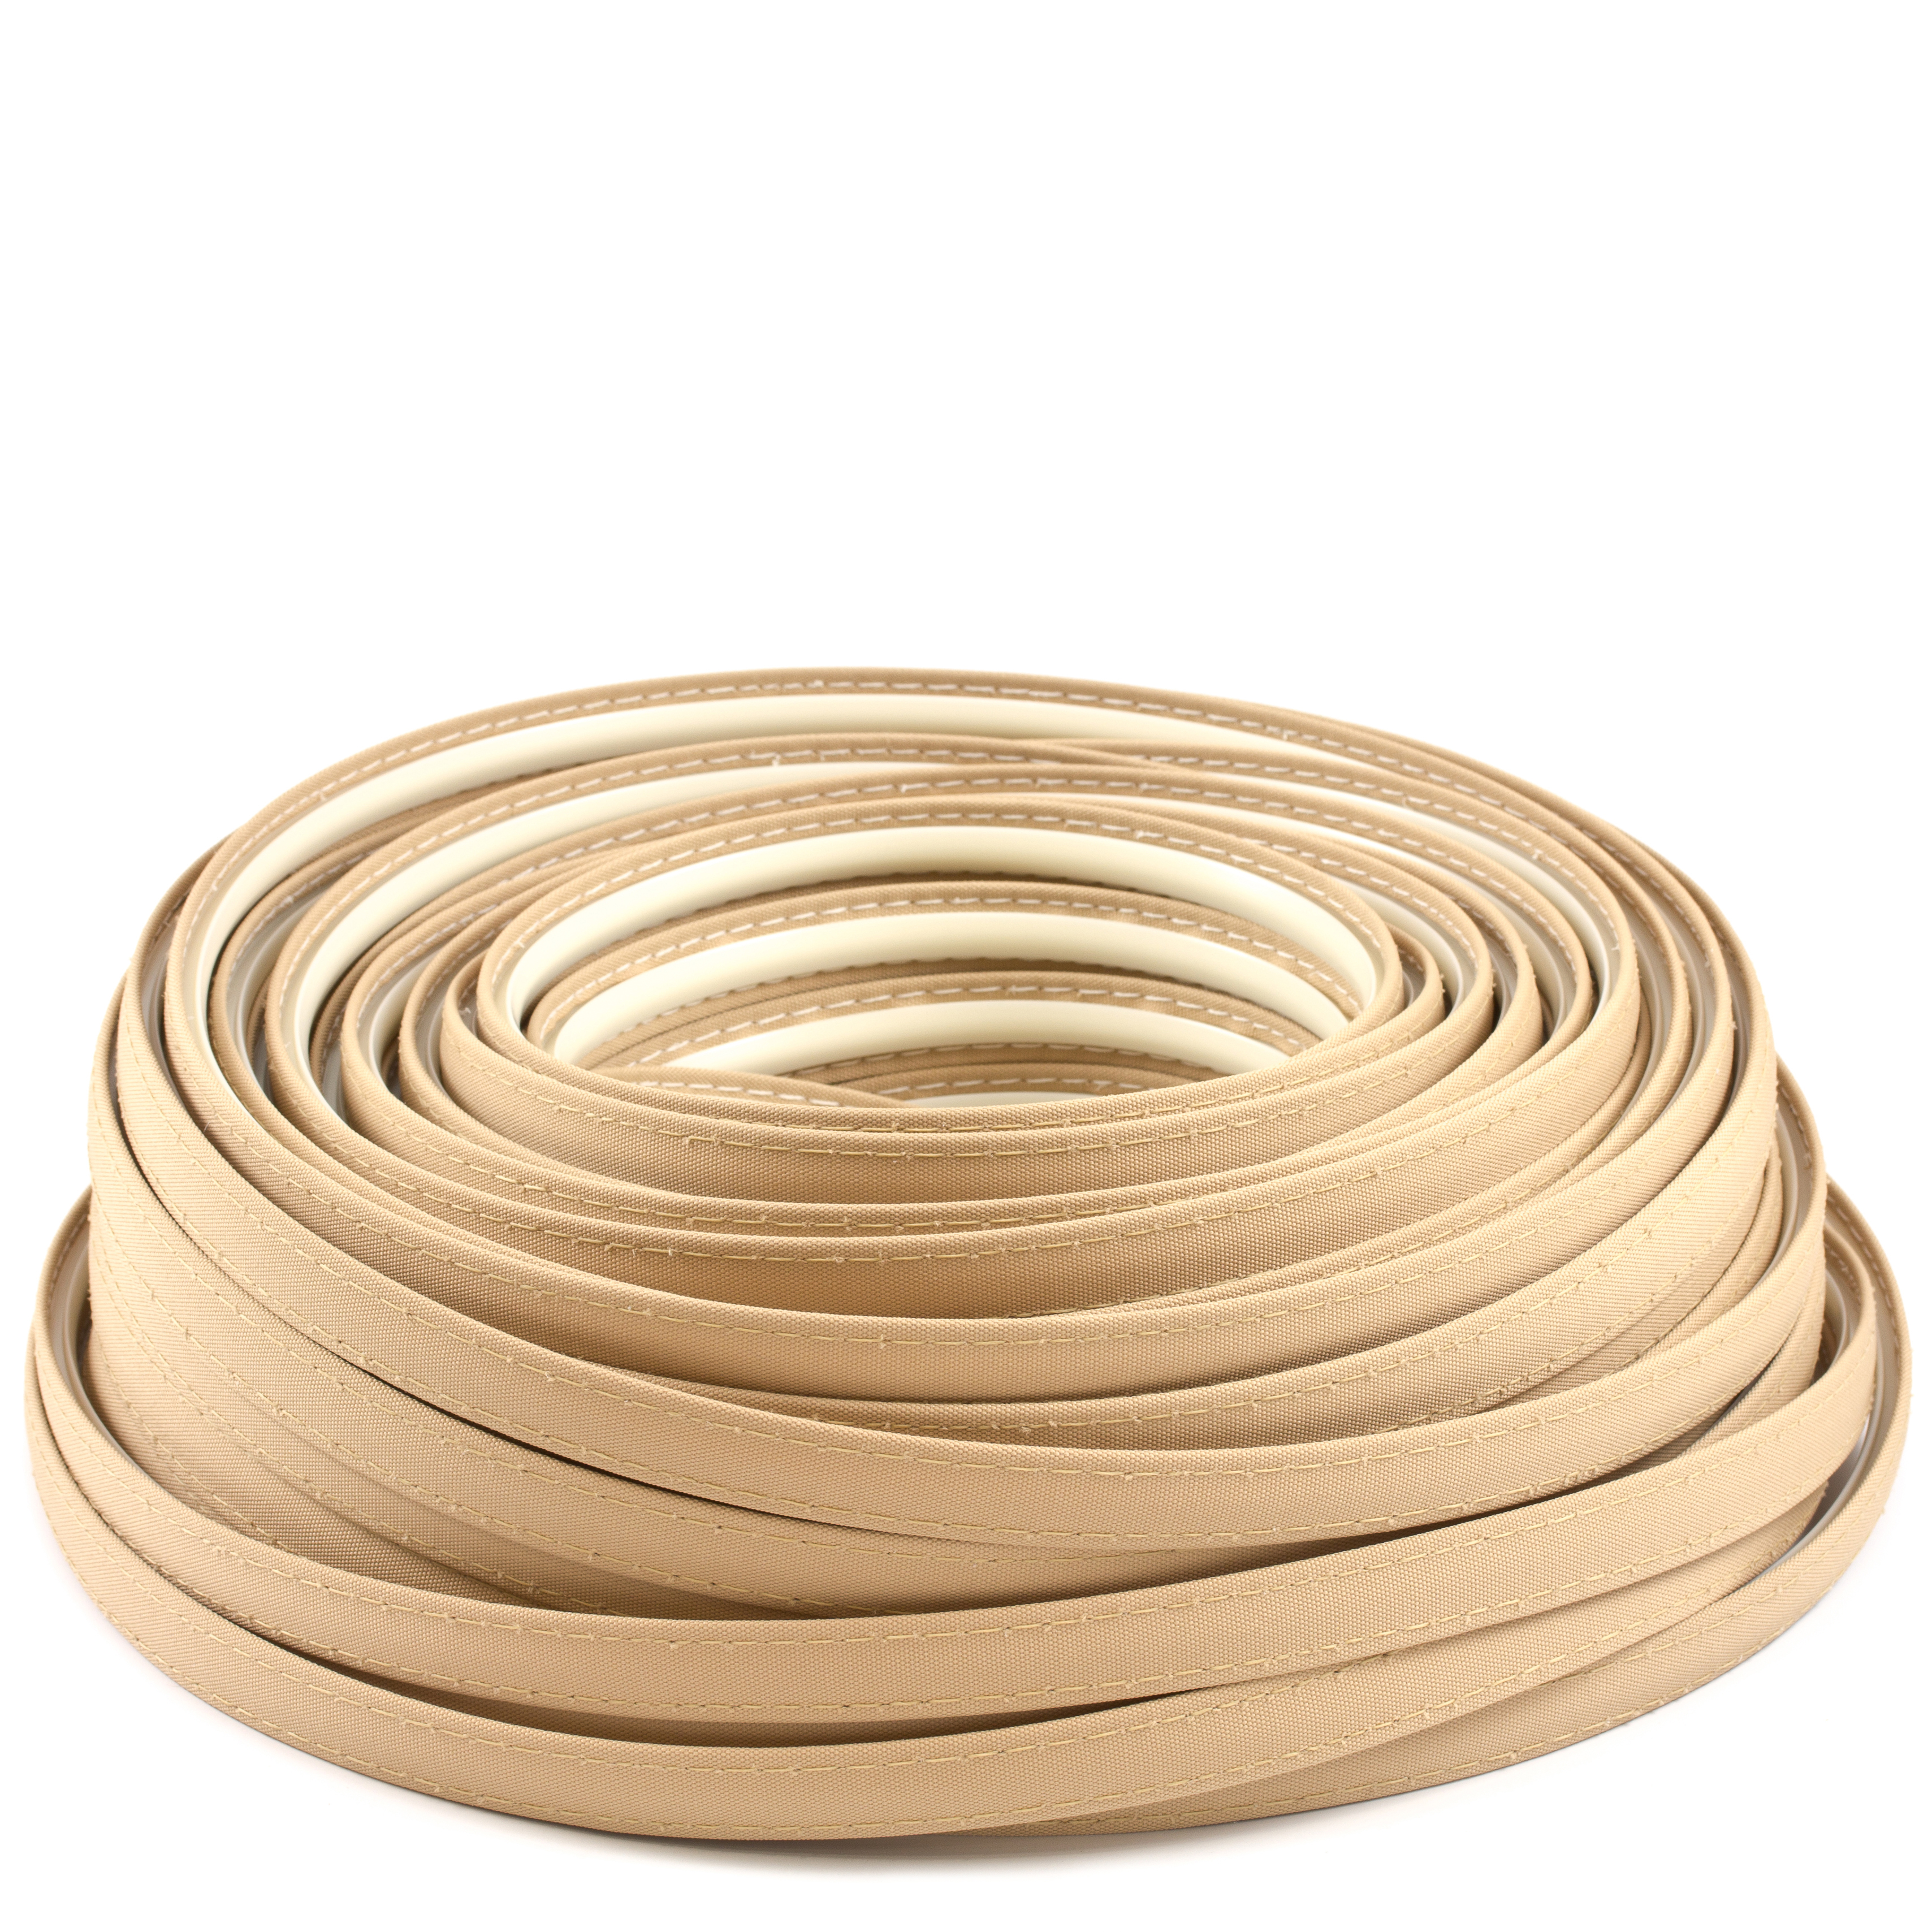 Steel Stitch Firesist Covered ZipStrip #82012 Toast Beige 160' Full Rolls Only